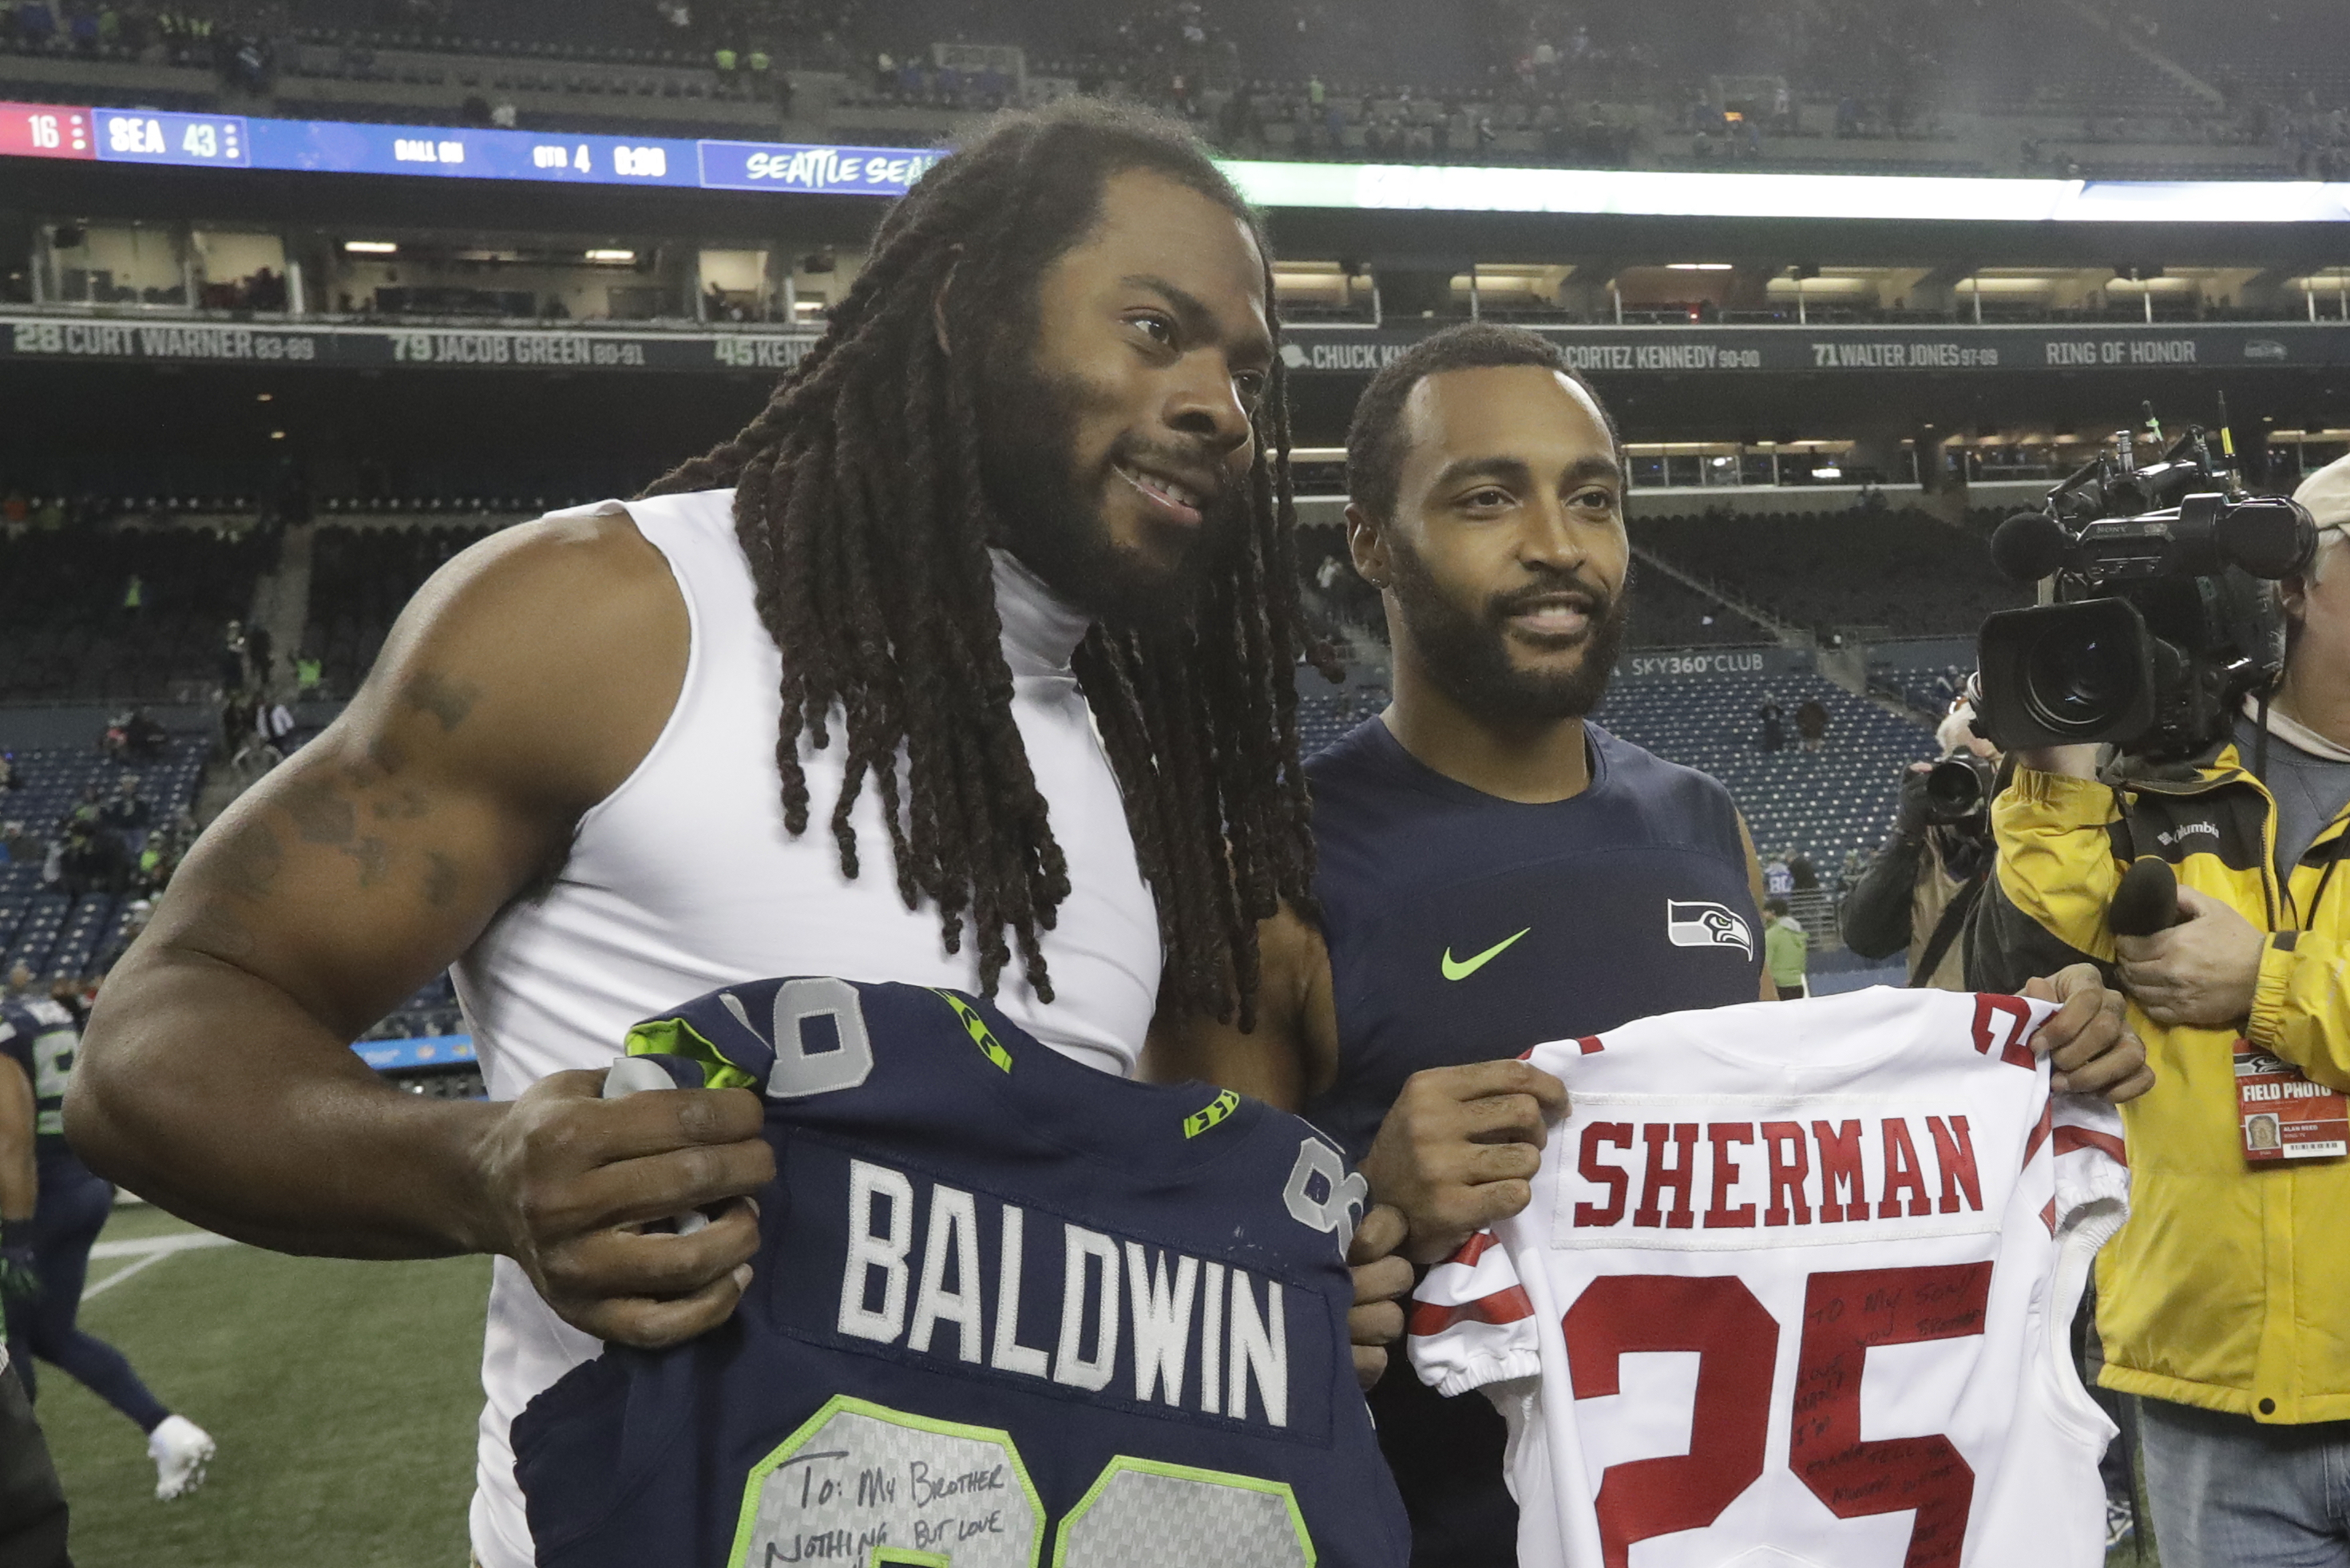 sale retailer 57b06 895b7 Richard Sherman: 'Been an Honor' to Play with Doug Baldwin ...